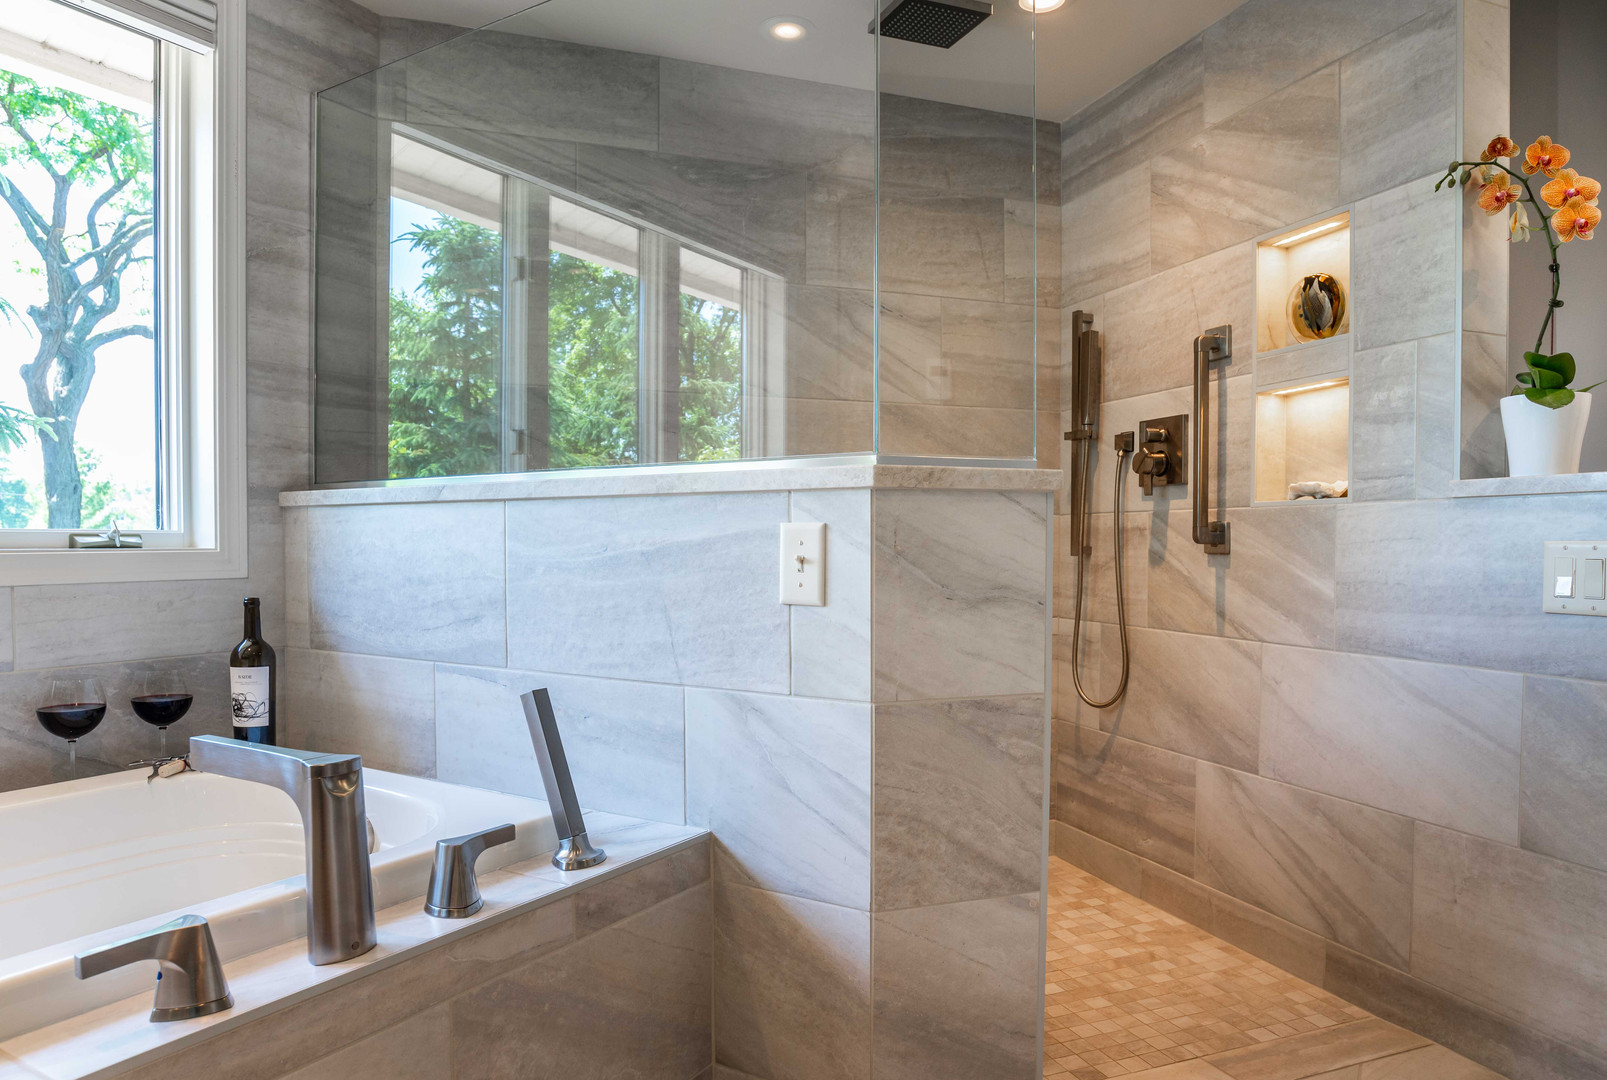 A luxury hotel-worthy shower features large scale, stone-look porcelain tile, a barrier-free entry, high-end fixtures and illuminated shampoo niches